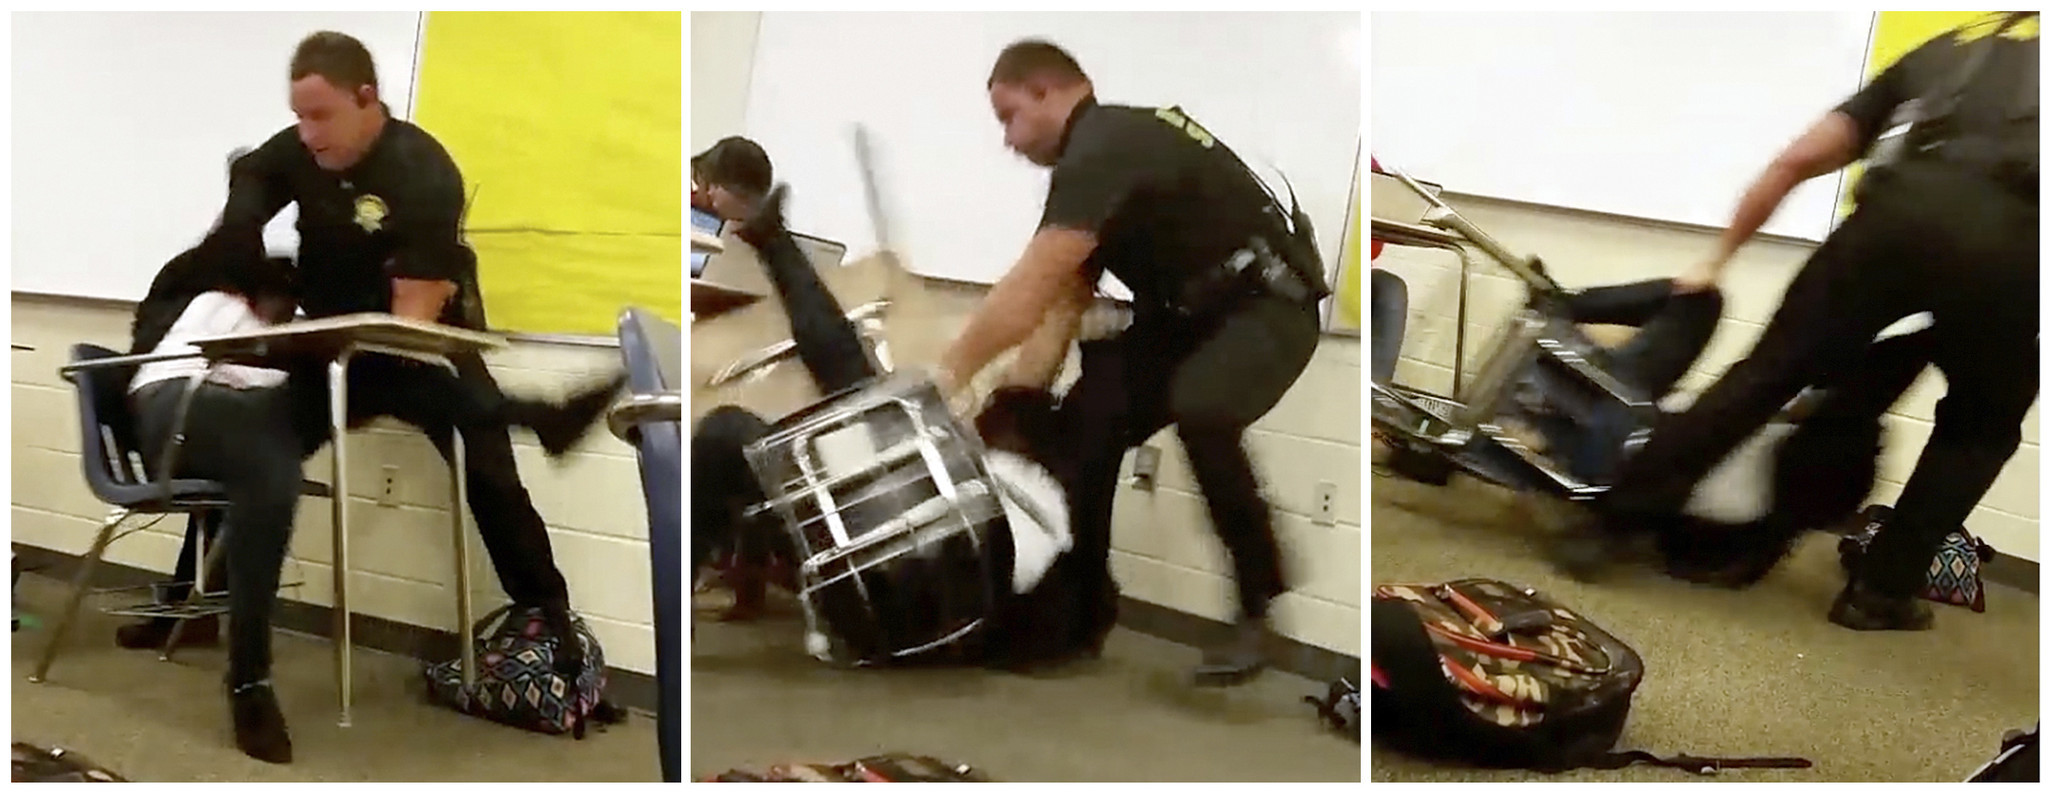 South Carolina classroom arrest raises questions about police role in schools